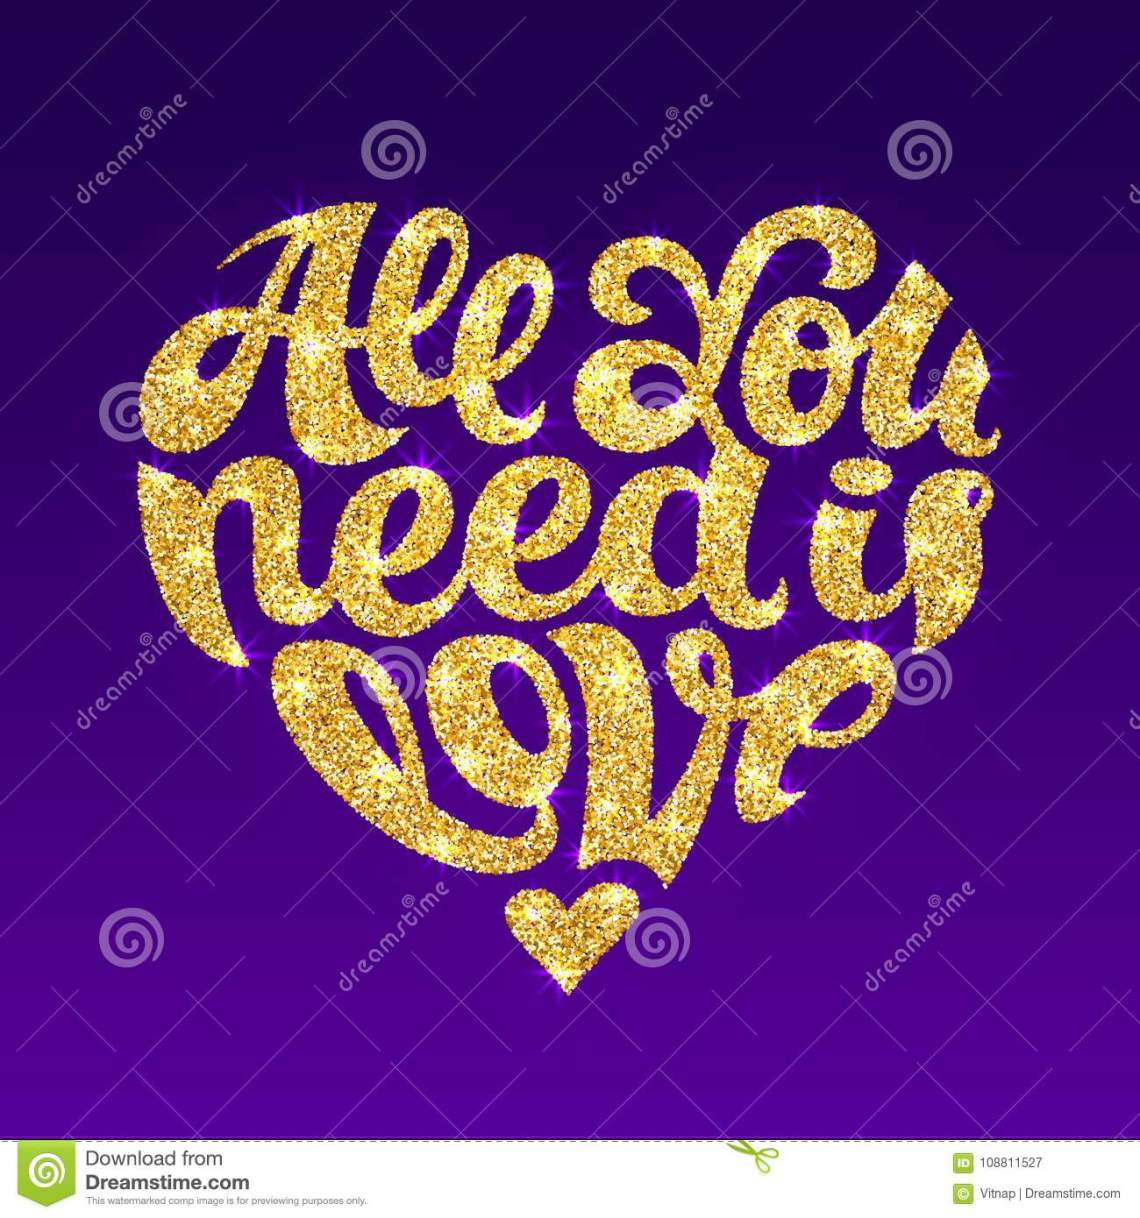 Download All You Need Is Love Vector Gold Glitter Lettering Design ...